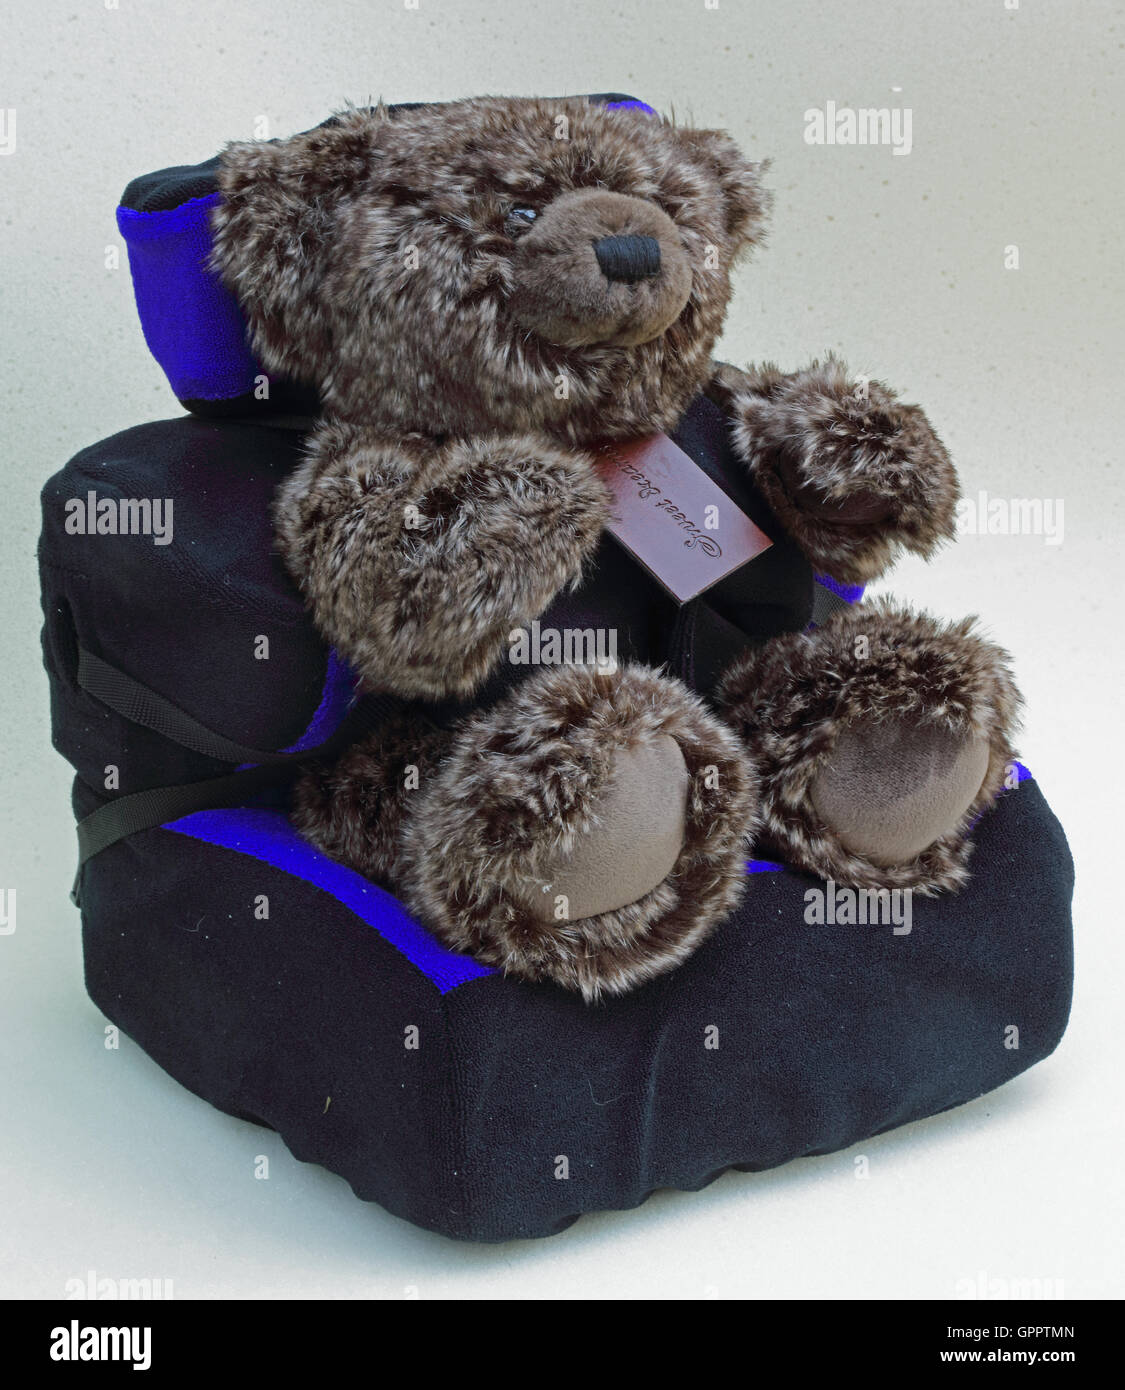 A cuddly Brown Teddy Bear sat and safely strapped and secured in a custom made seat normally associated with Wheelchairs. - Stock Image